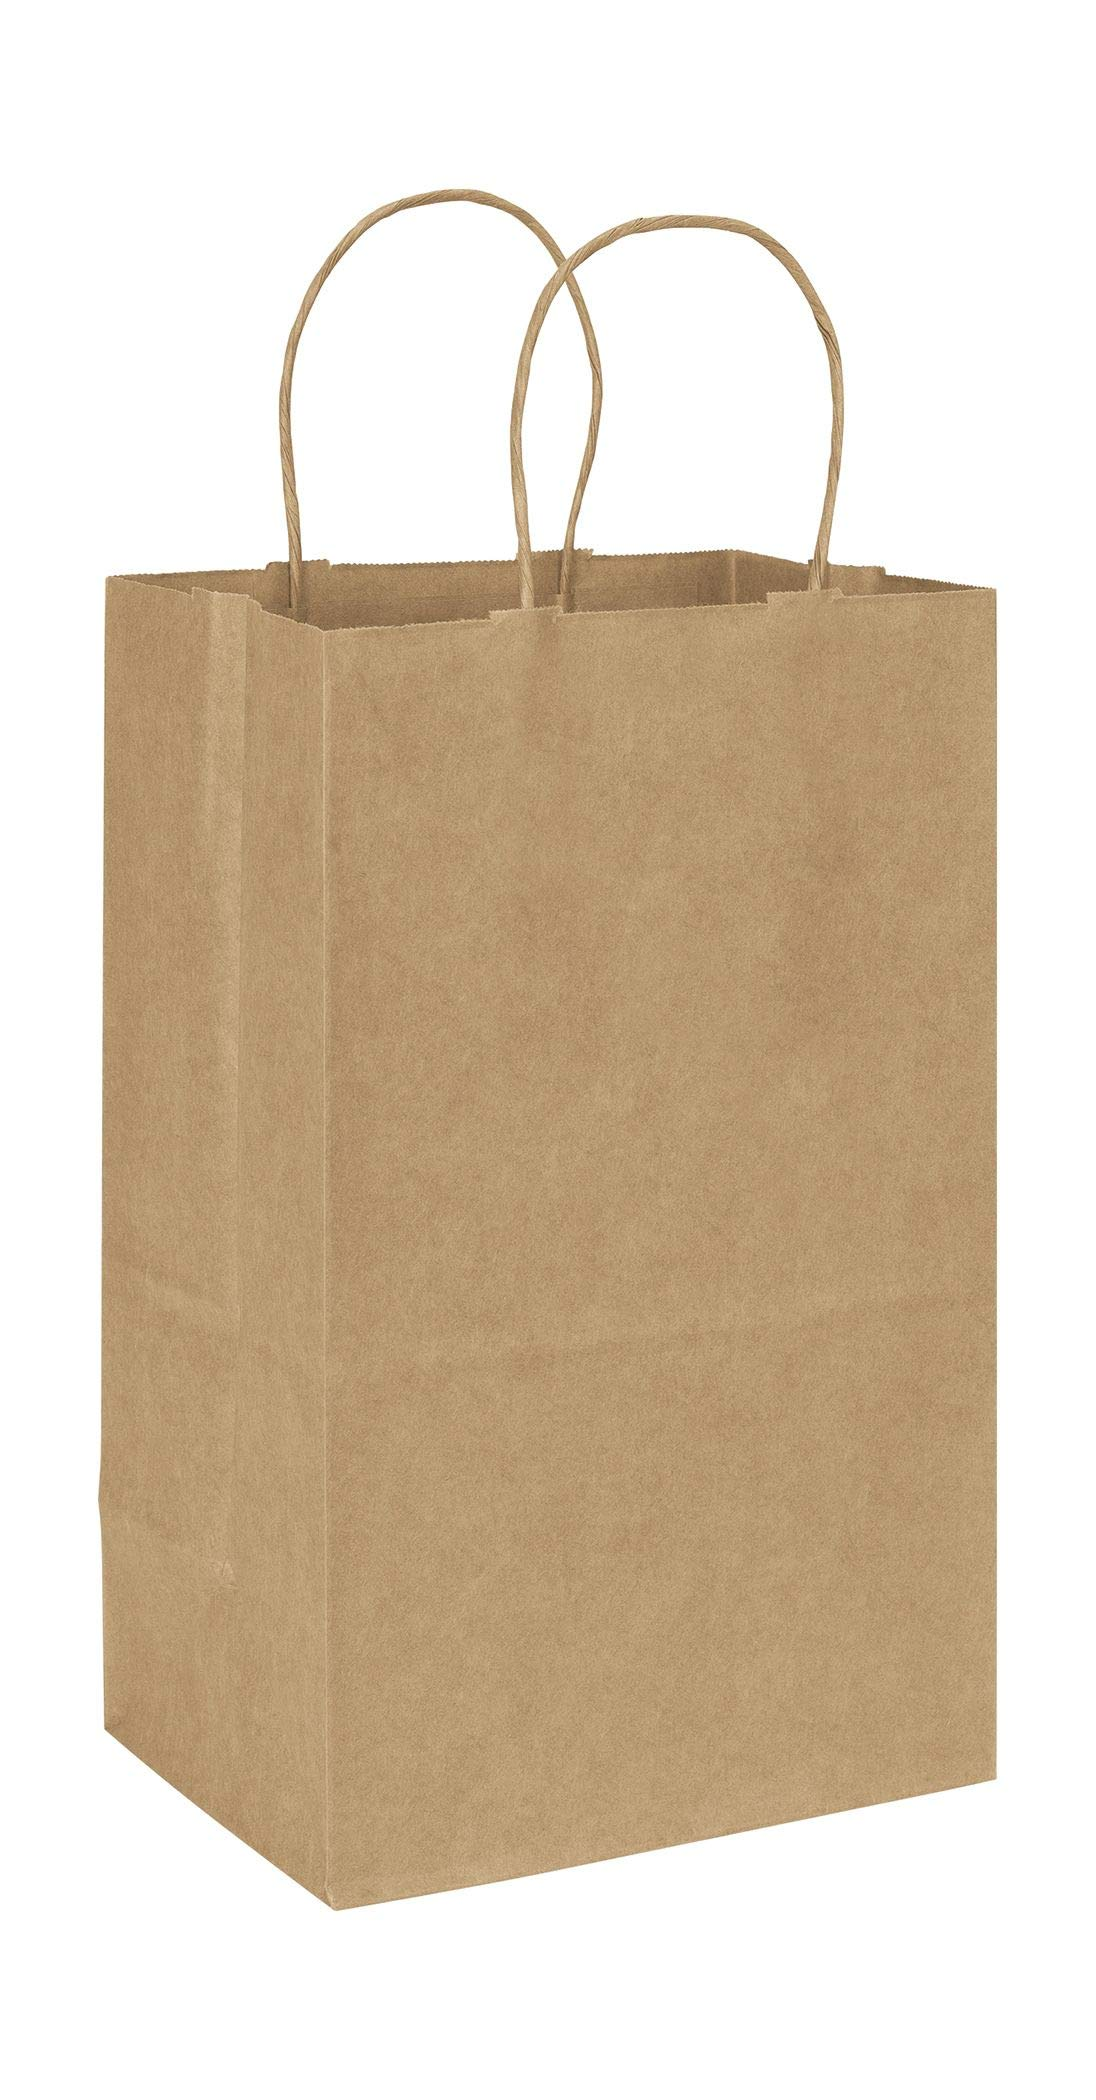 Recycled Kraft Paper Shoppers Debbie, 8 3/4 x 6 x 14'' (250 Bags) - BOWS-14-080613-RK